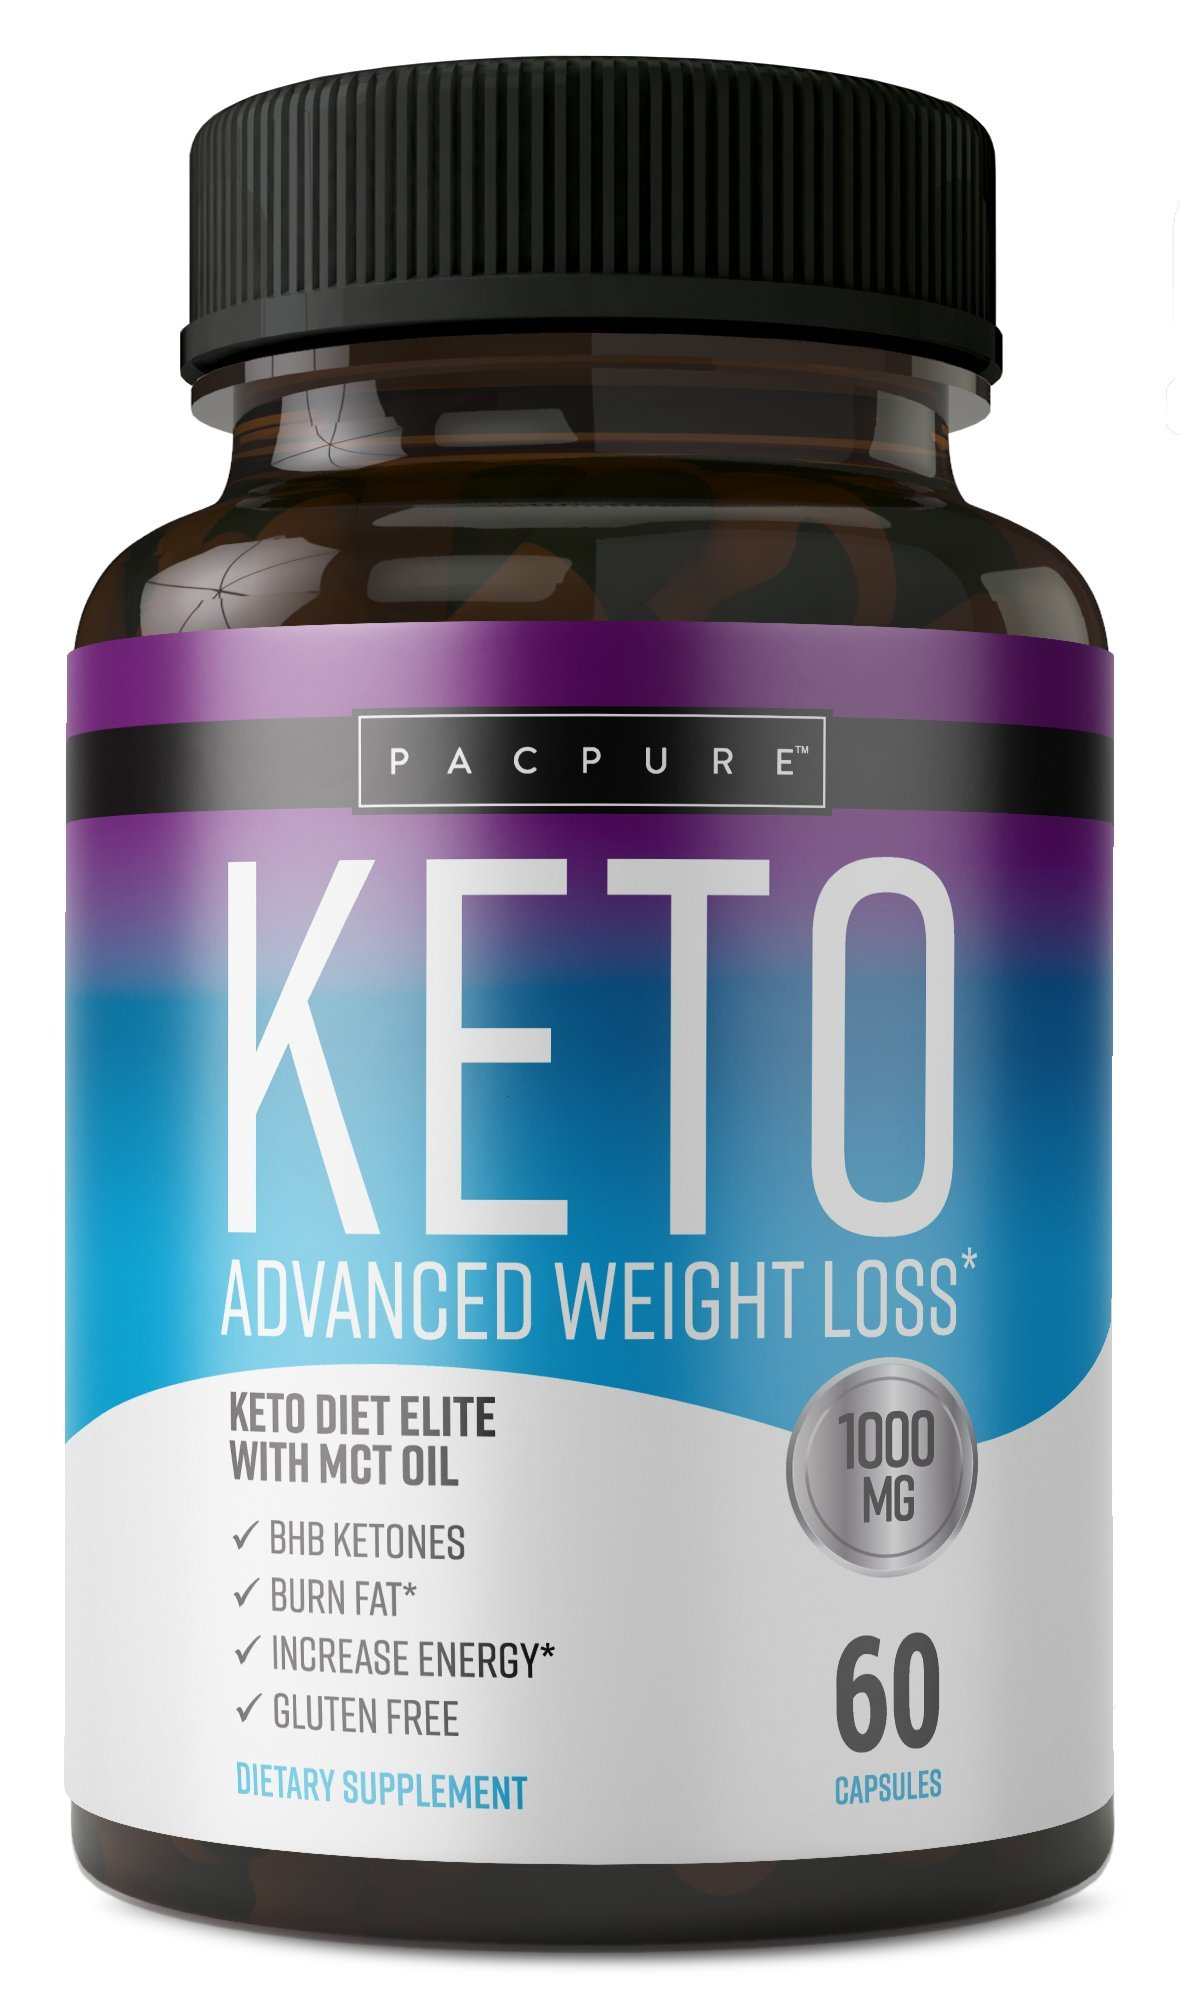 Keto Diet Elite 1000mg Keto Advanced Weight Loss Ketogenic Fat Burner Burn Fat Instead of Carbs Ketosis Supplement 30 Day Supply